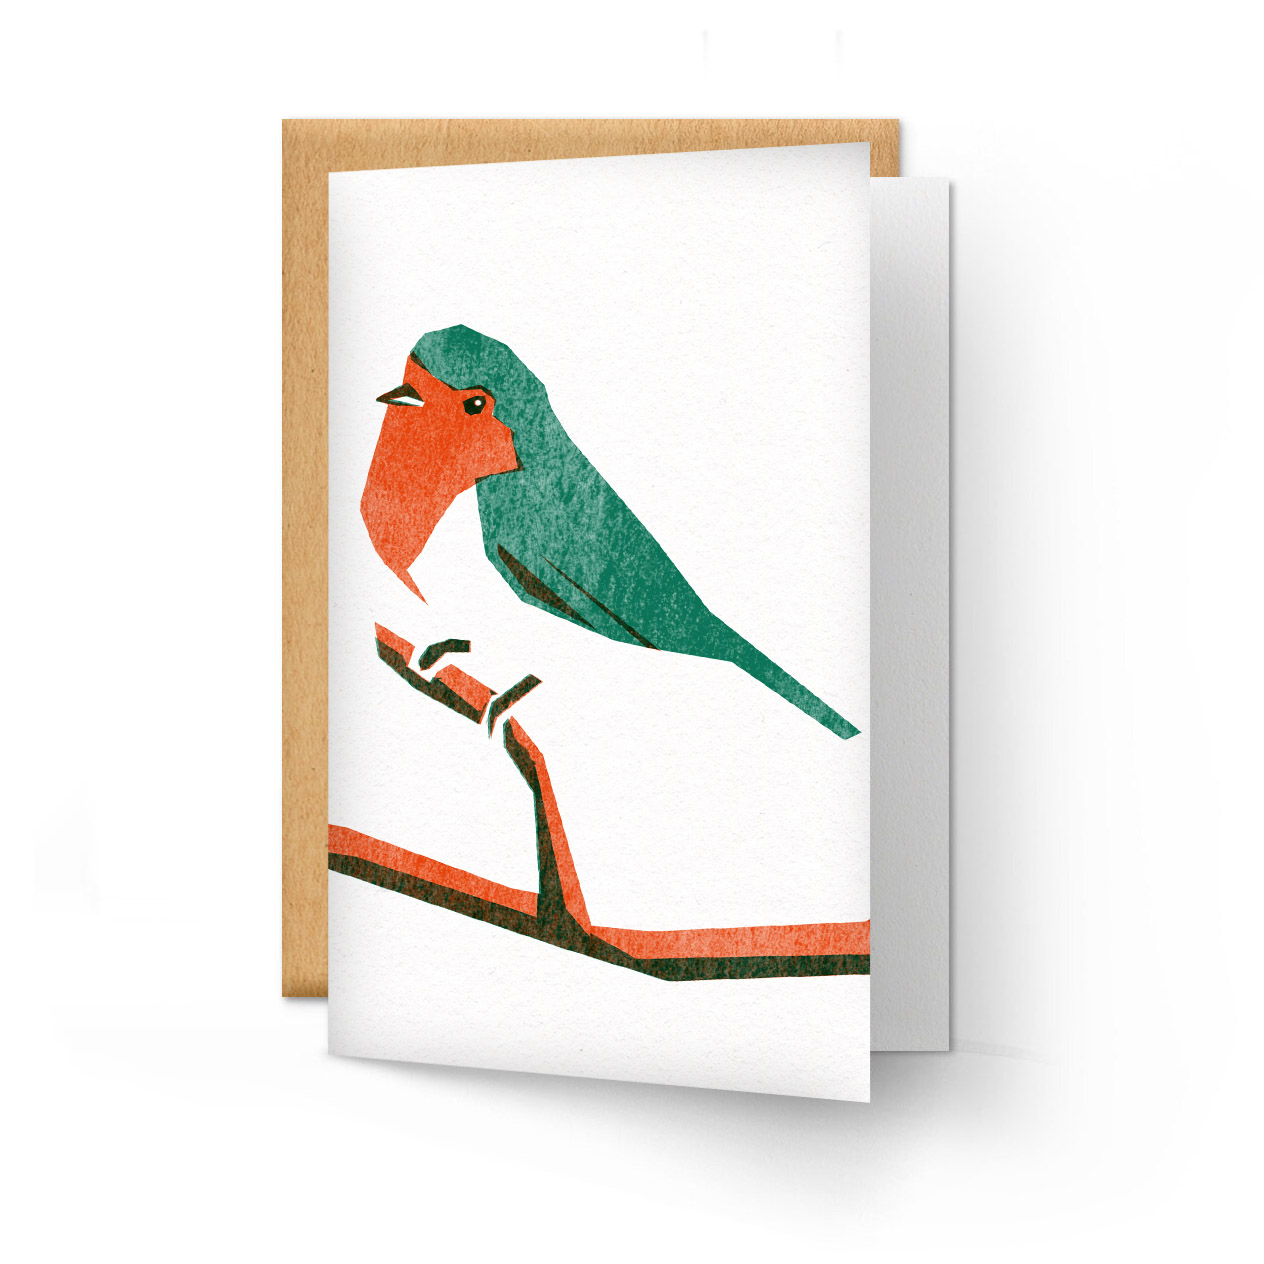 Screen printing Christmas cards with Daniel Haskett